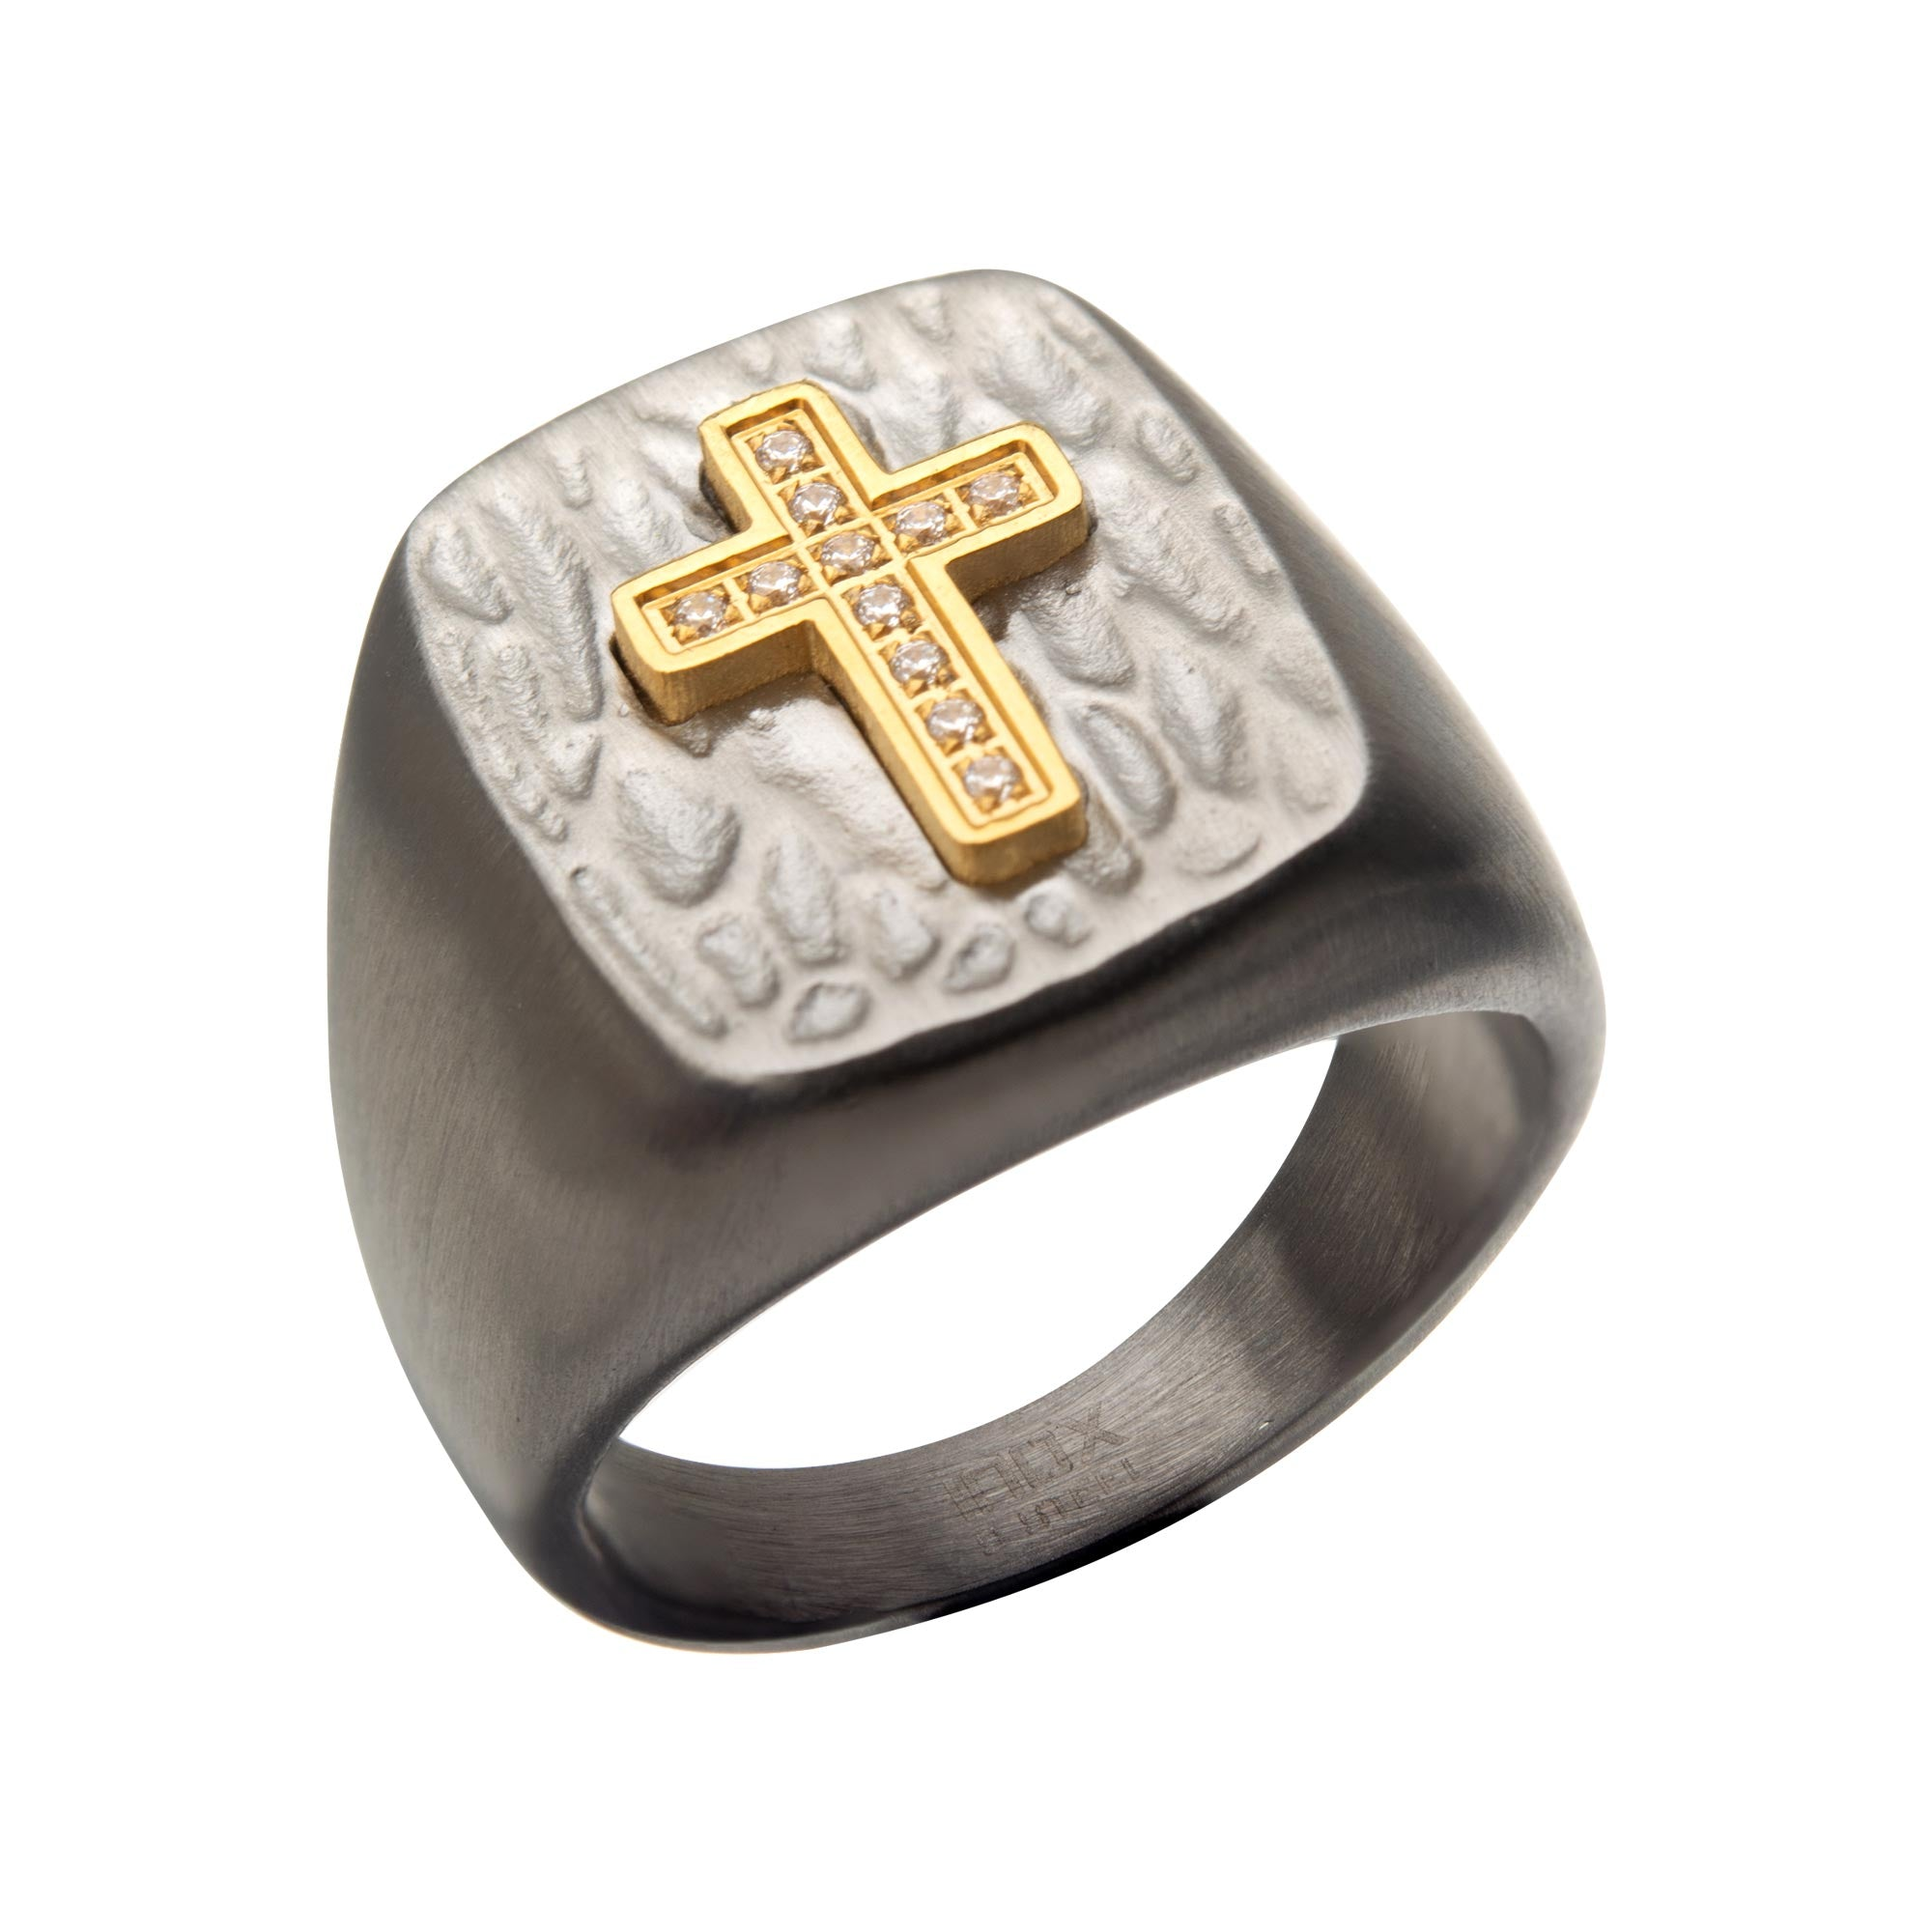 Gold Plated Cross with Clear CZs on Steel Hammered Signet Rings